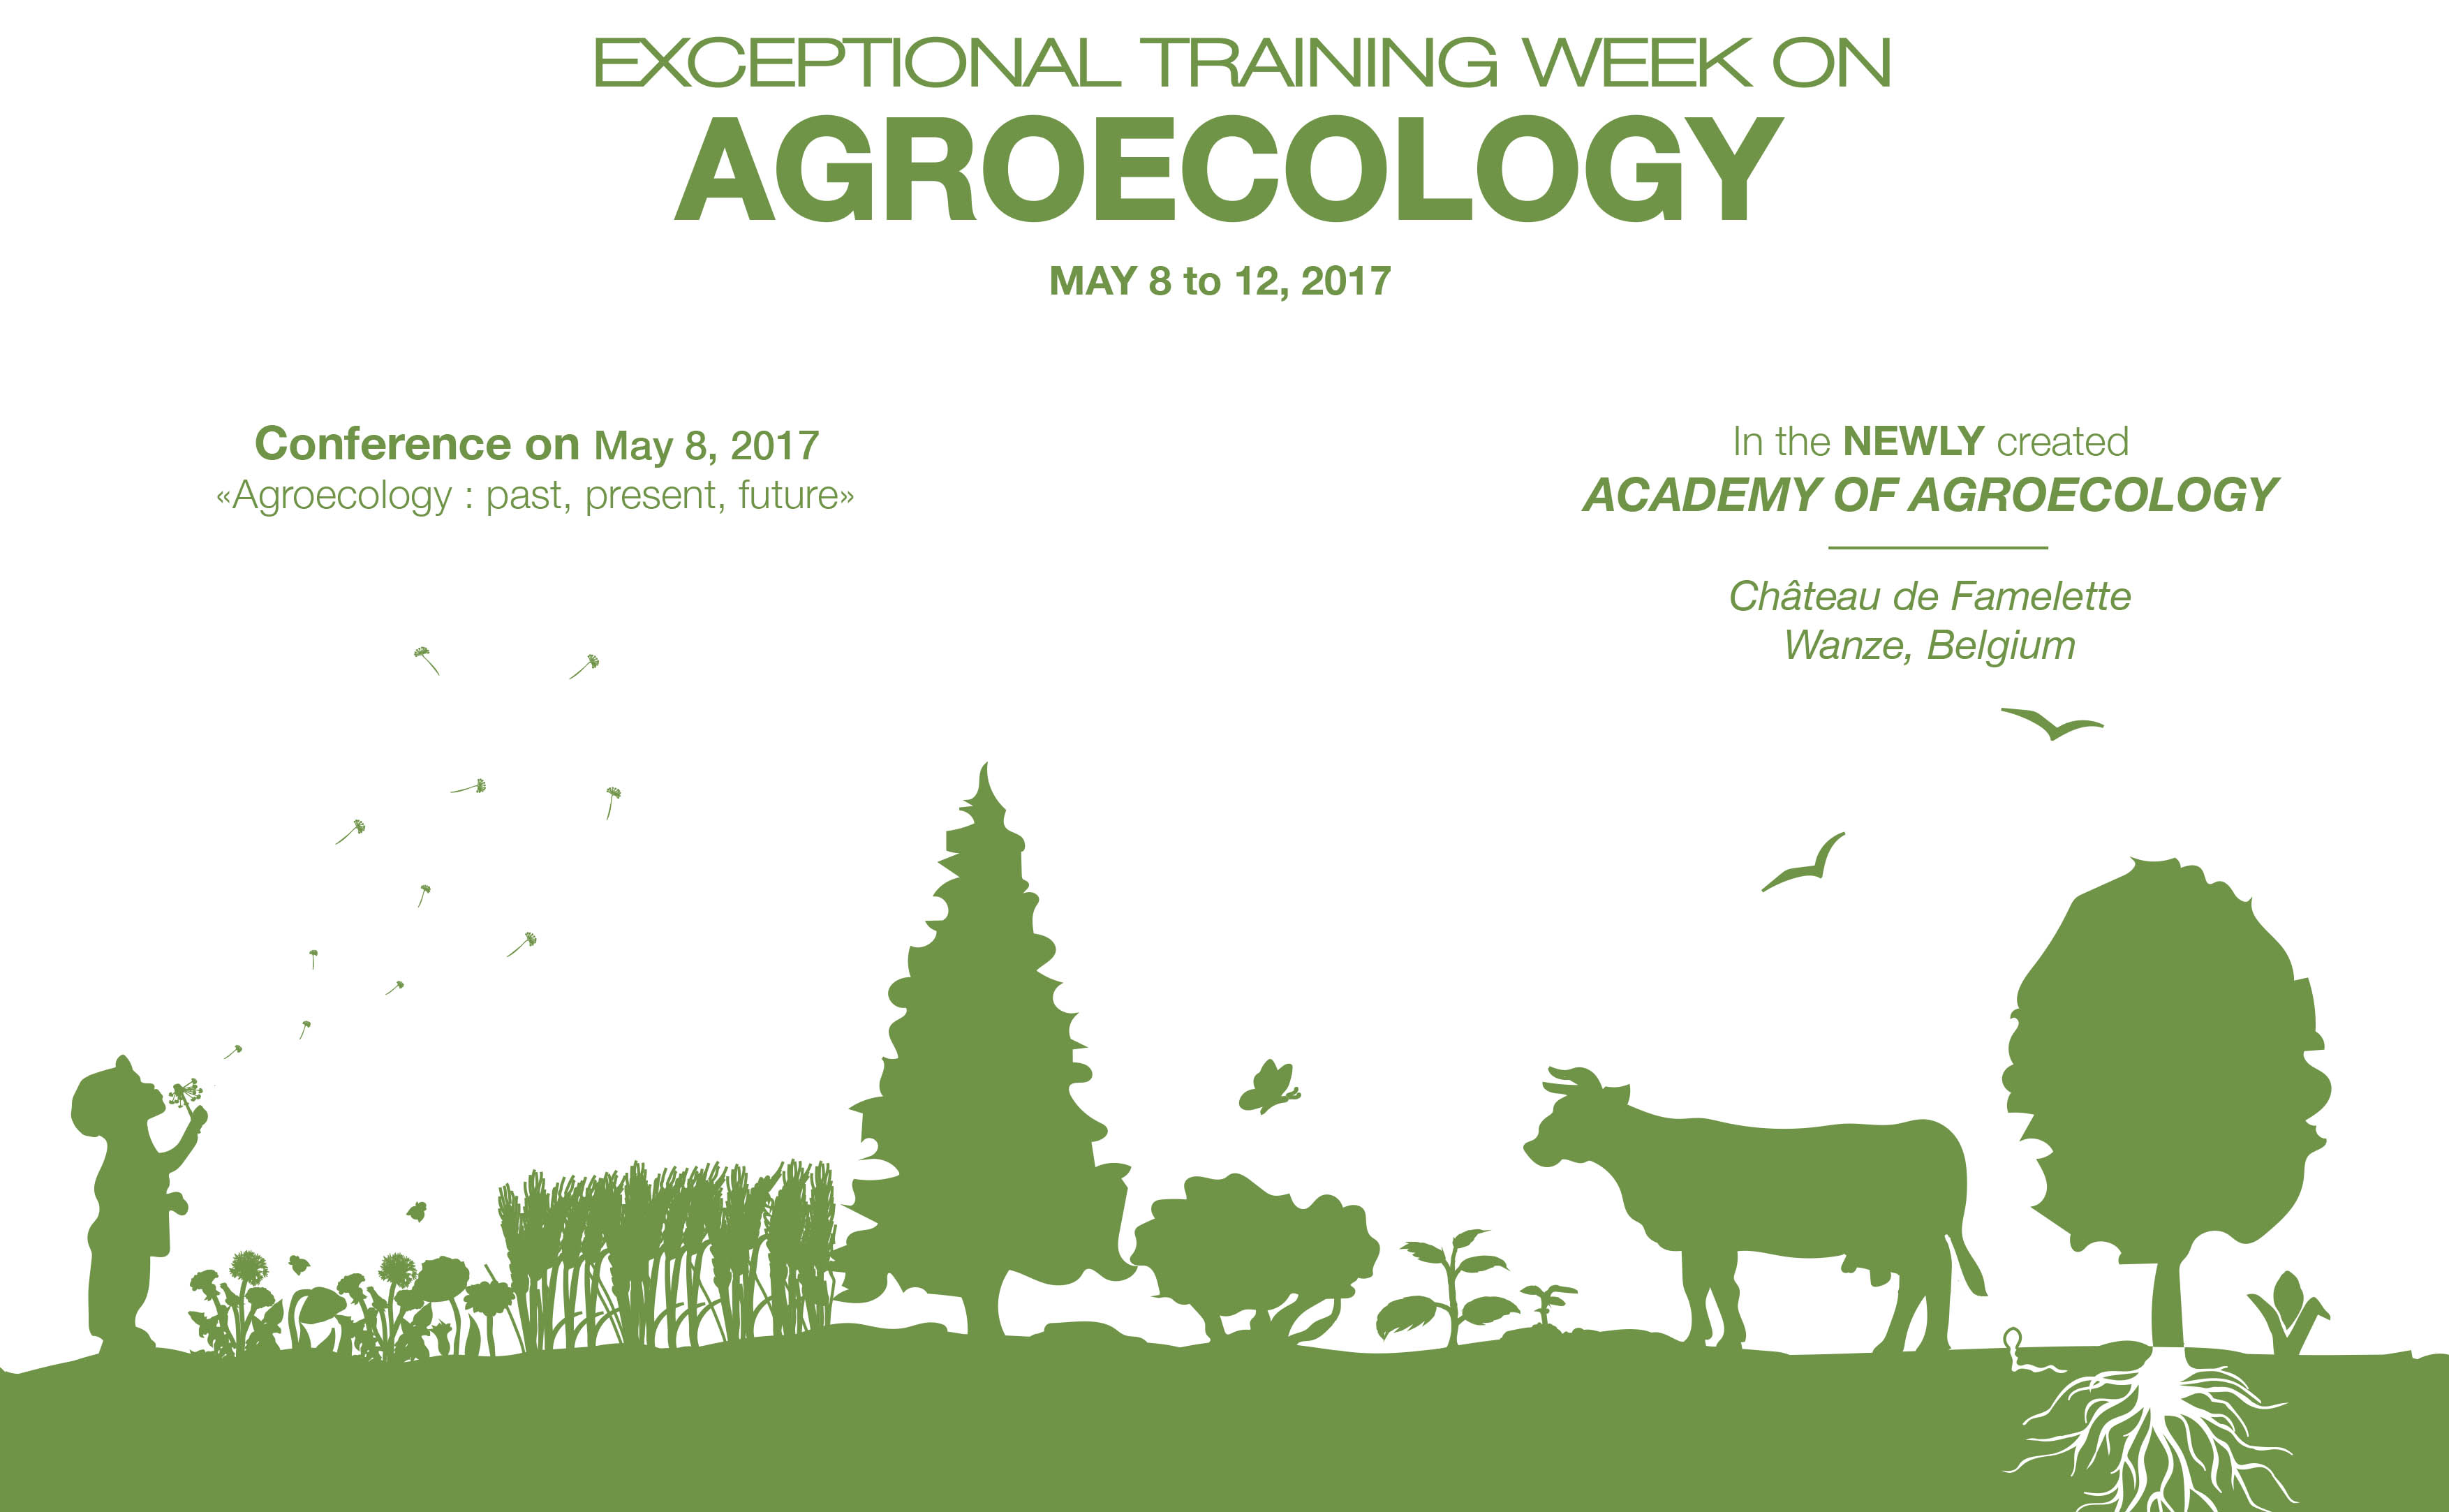 IMG Training Week Agroecology